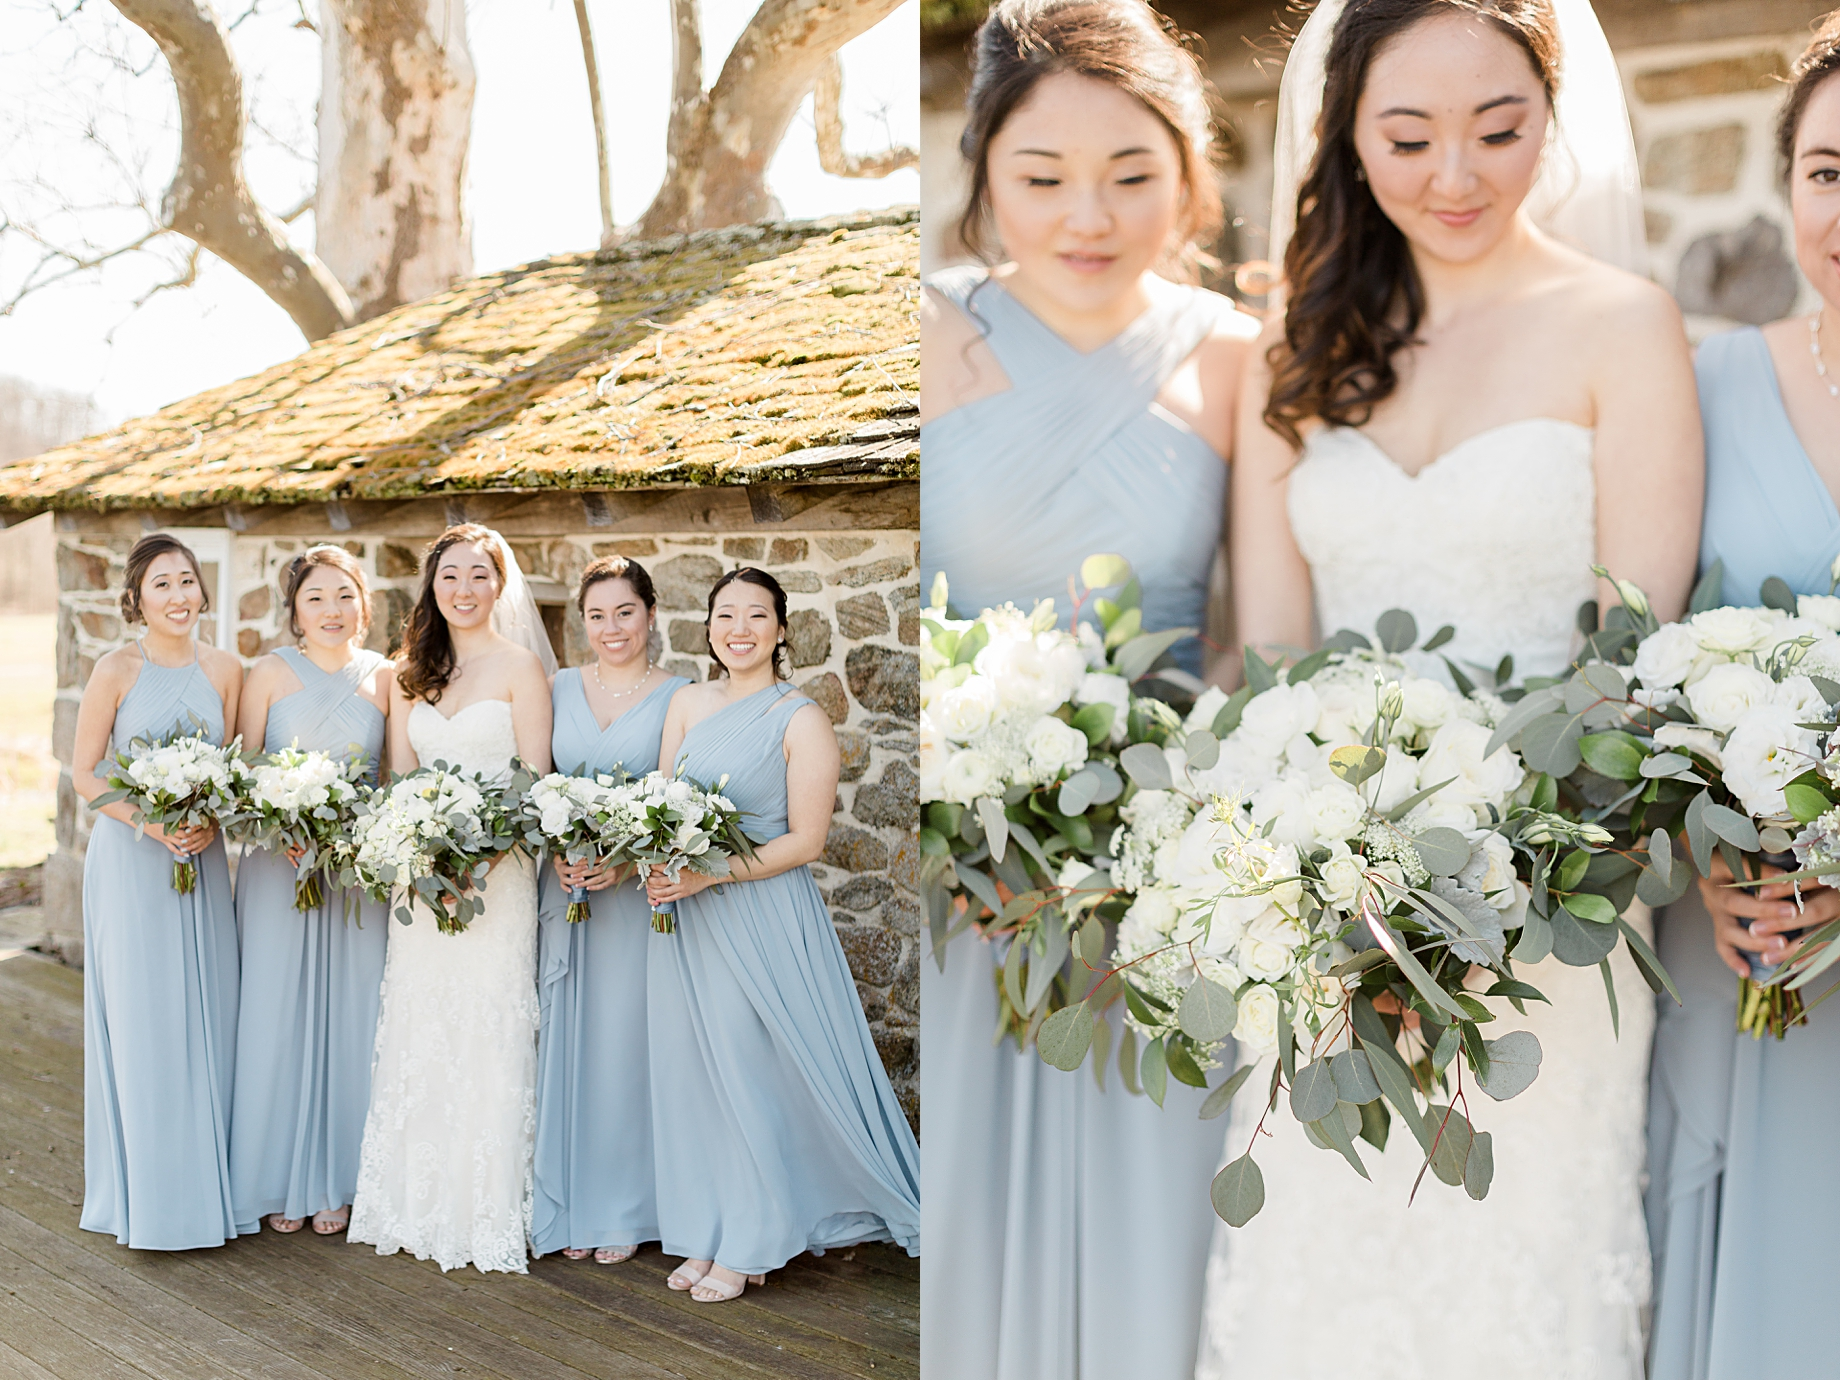 Elegant Winter Wedding at French Creek Golf Club | Bridesmaid Dresses from Azazie